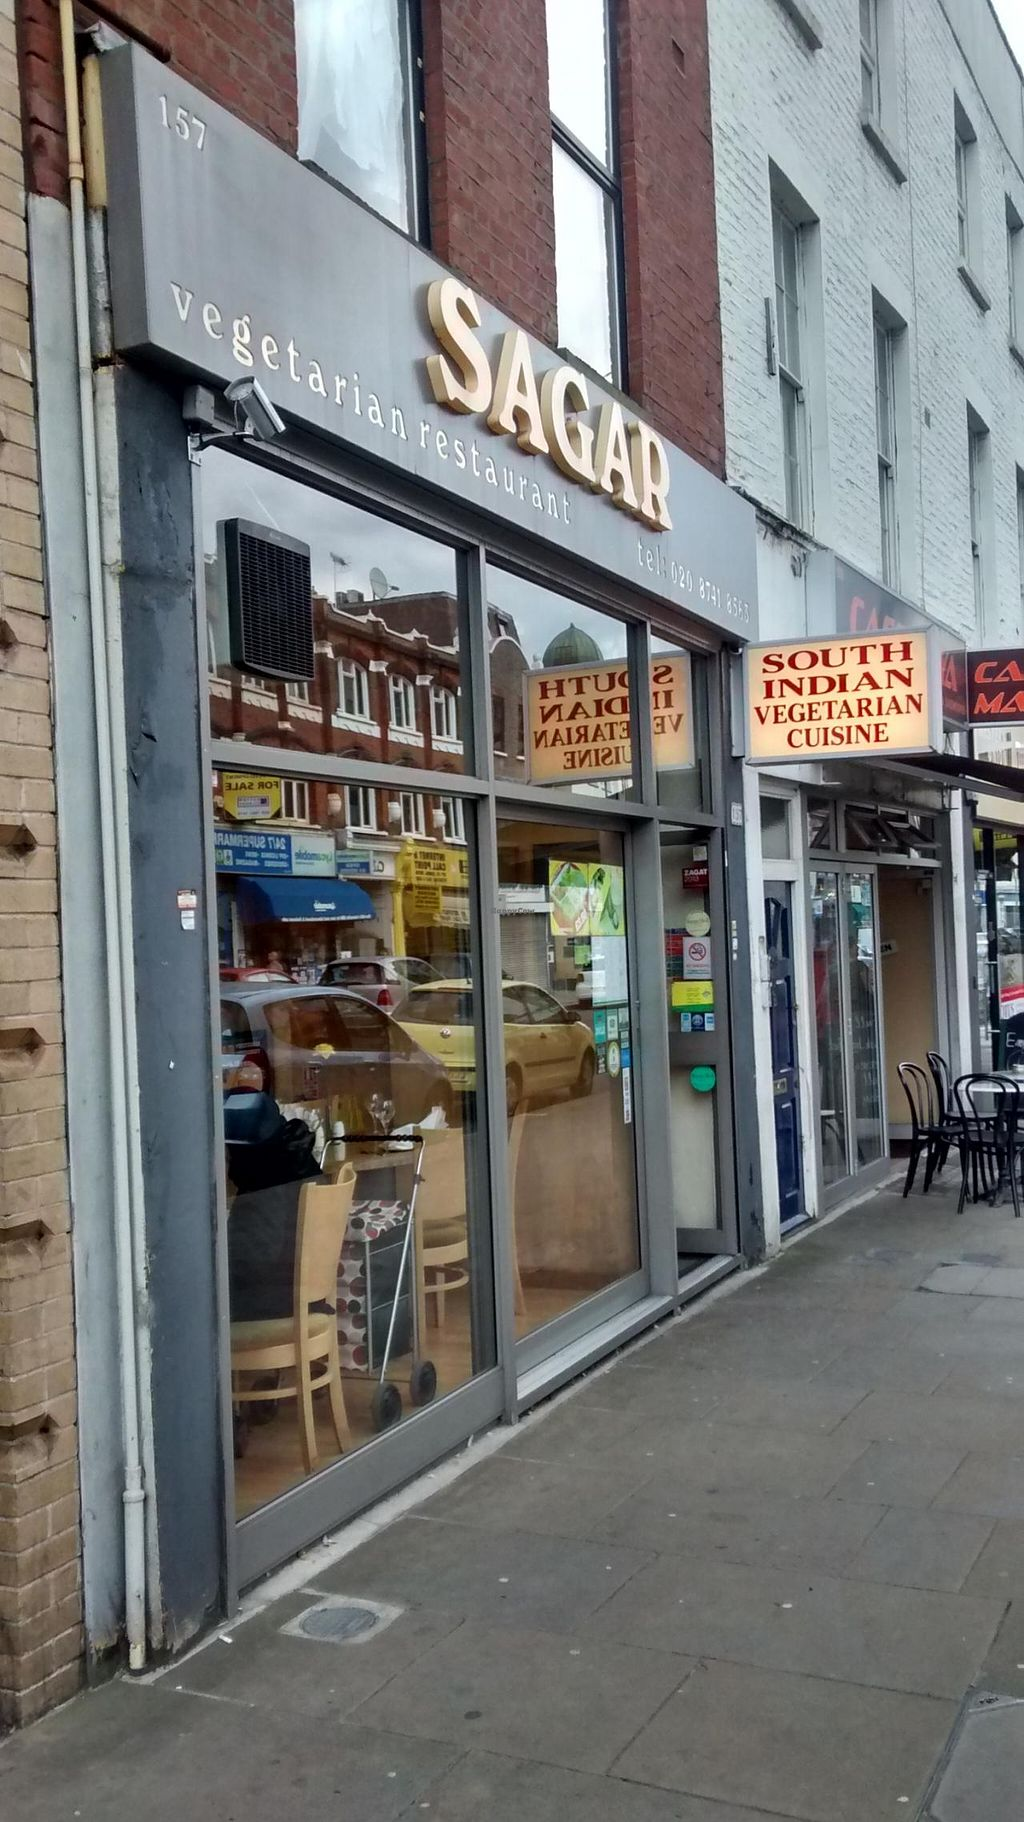 """Photo of Sagar - West End  by <a href=""""/members/profile/craigmc"""">craigmc</a> <br/>Shop front <br/> September 1, 2014  - <a href='/contact/abuse/image/14210/78782'>Report</a>"""